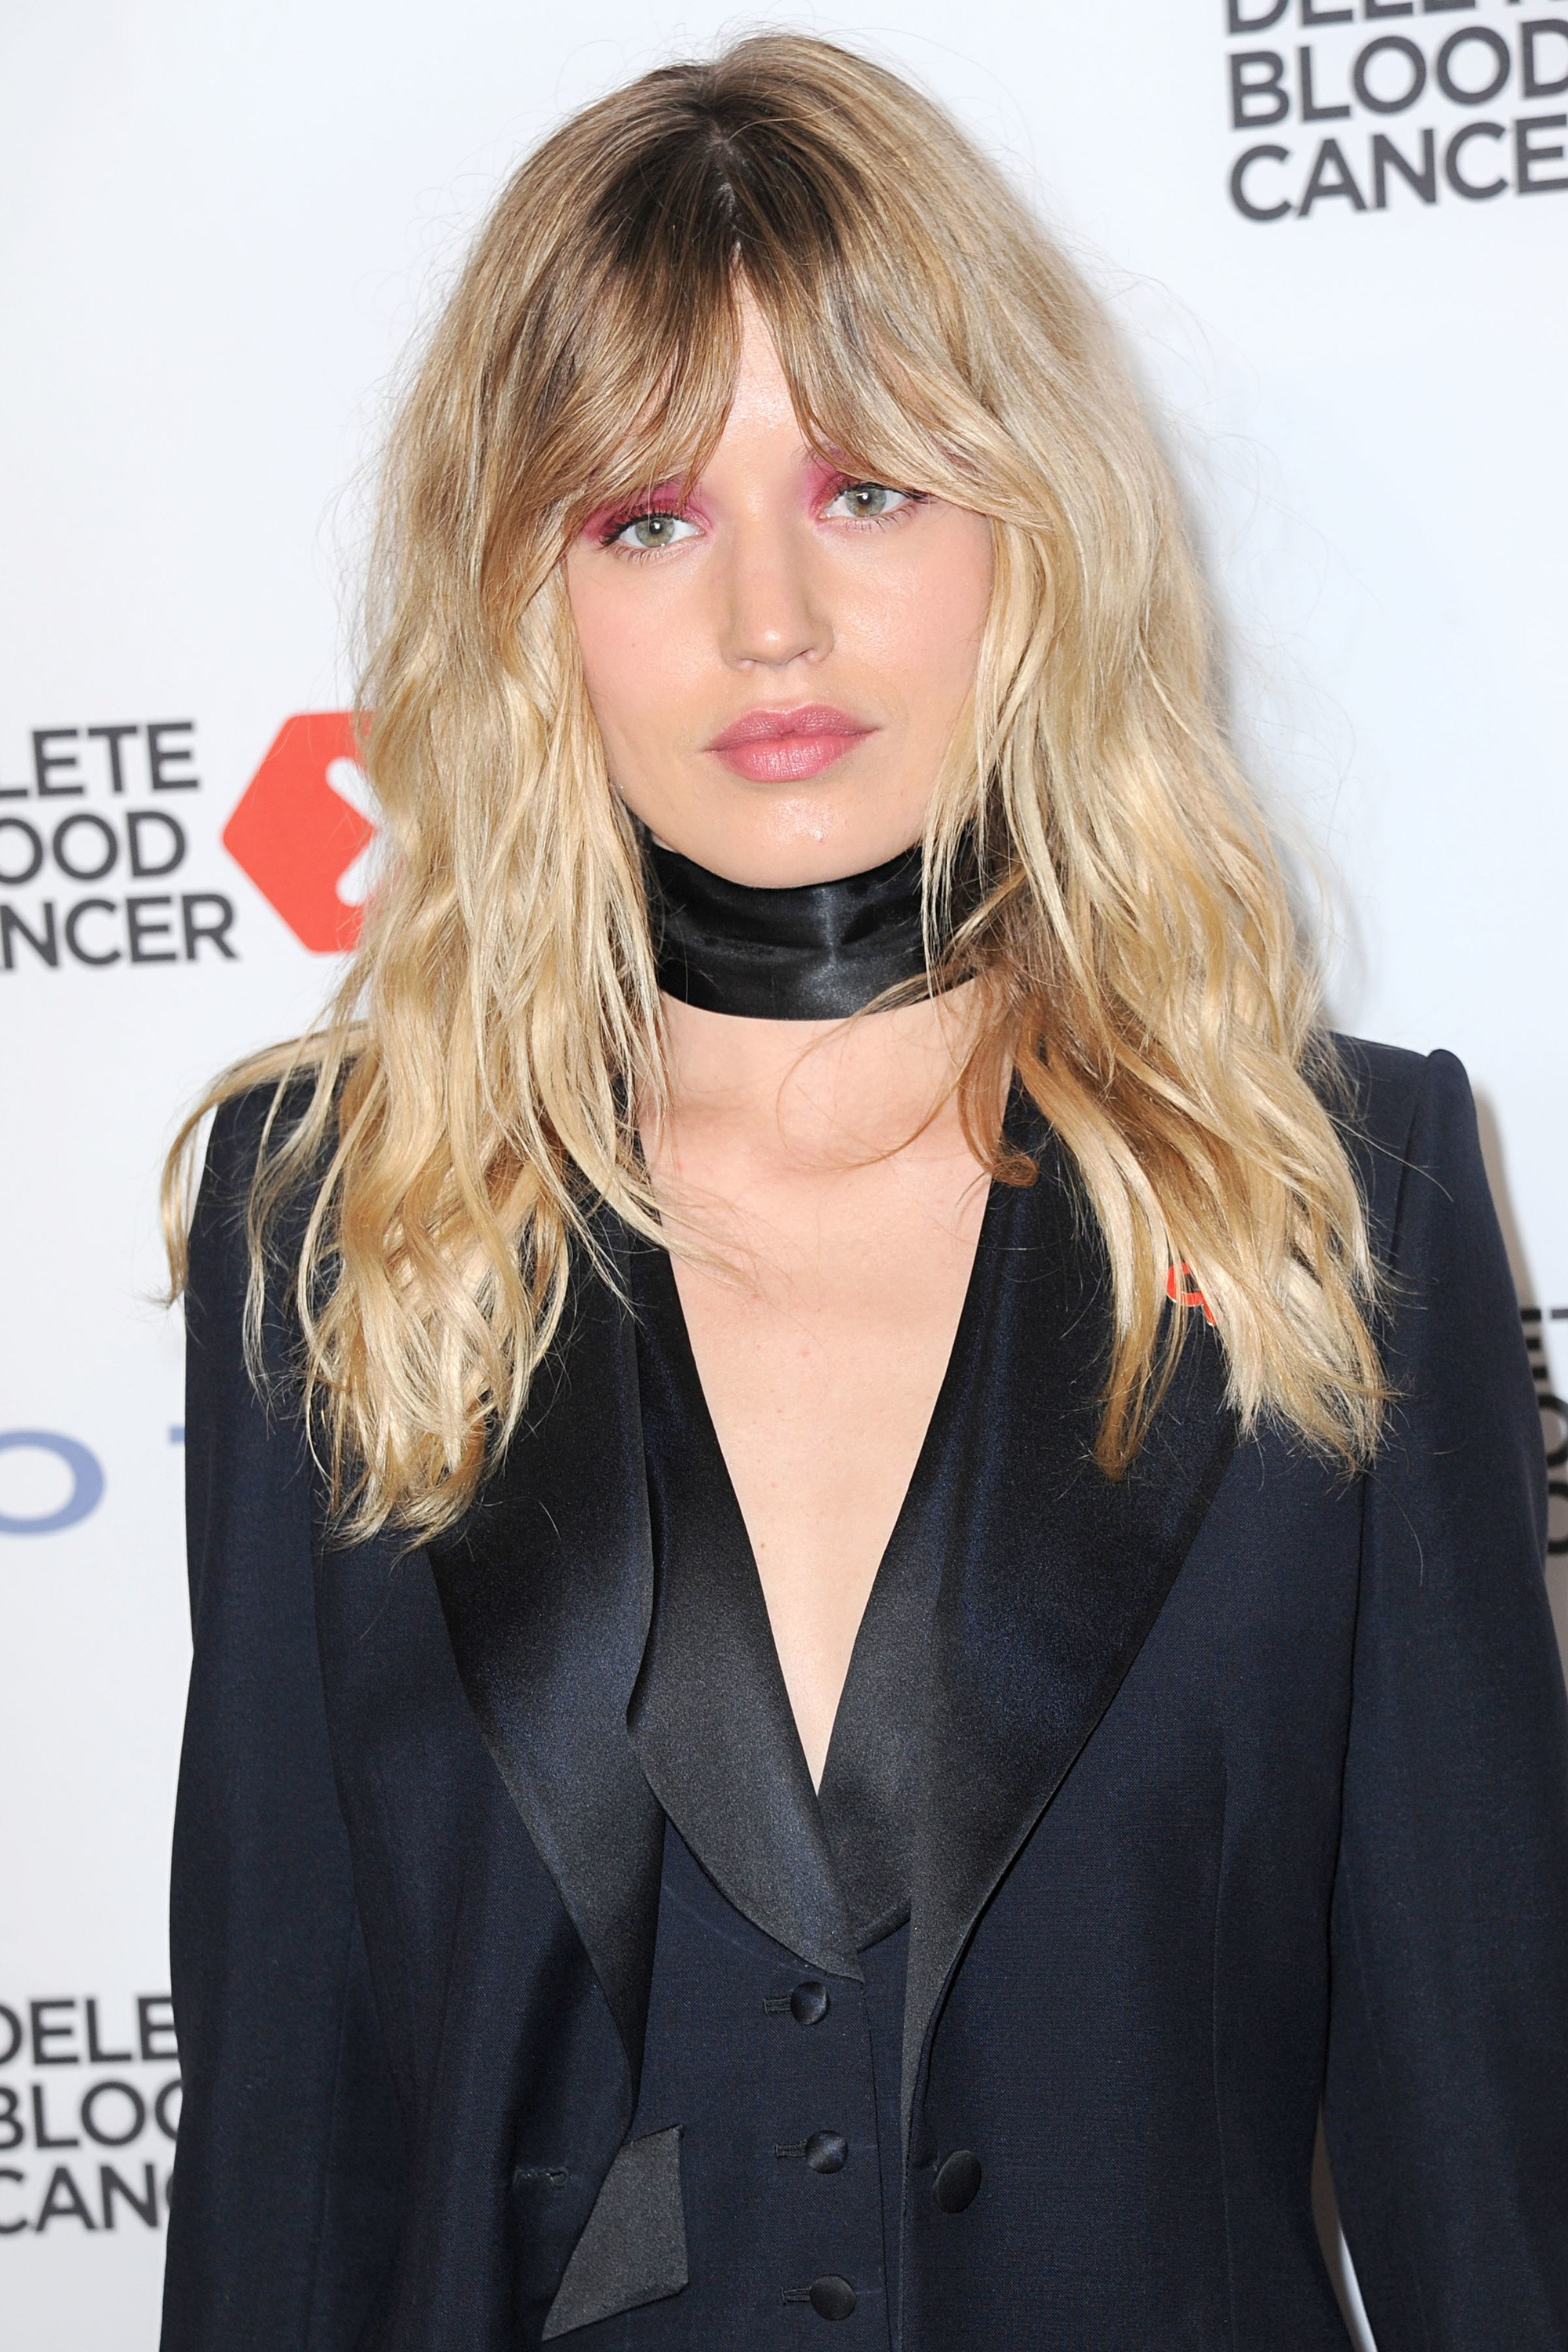 close up shot of georgia may jagger with black jacket, choker and split bangs hairstyle on the red carpet